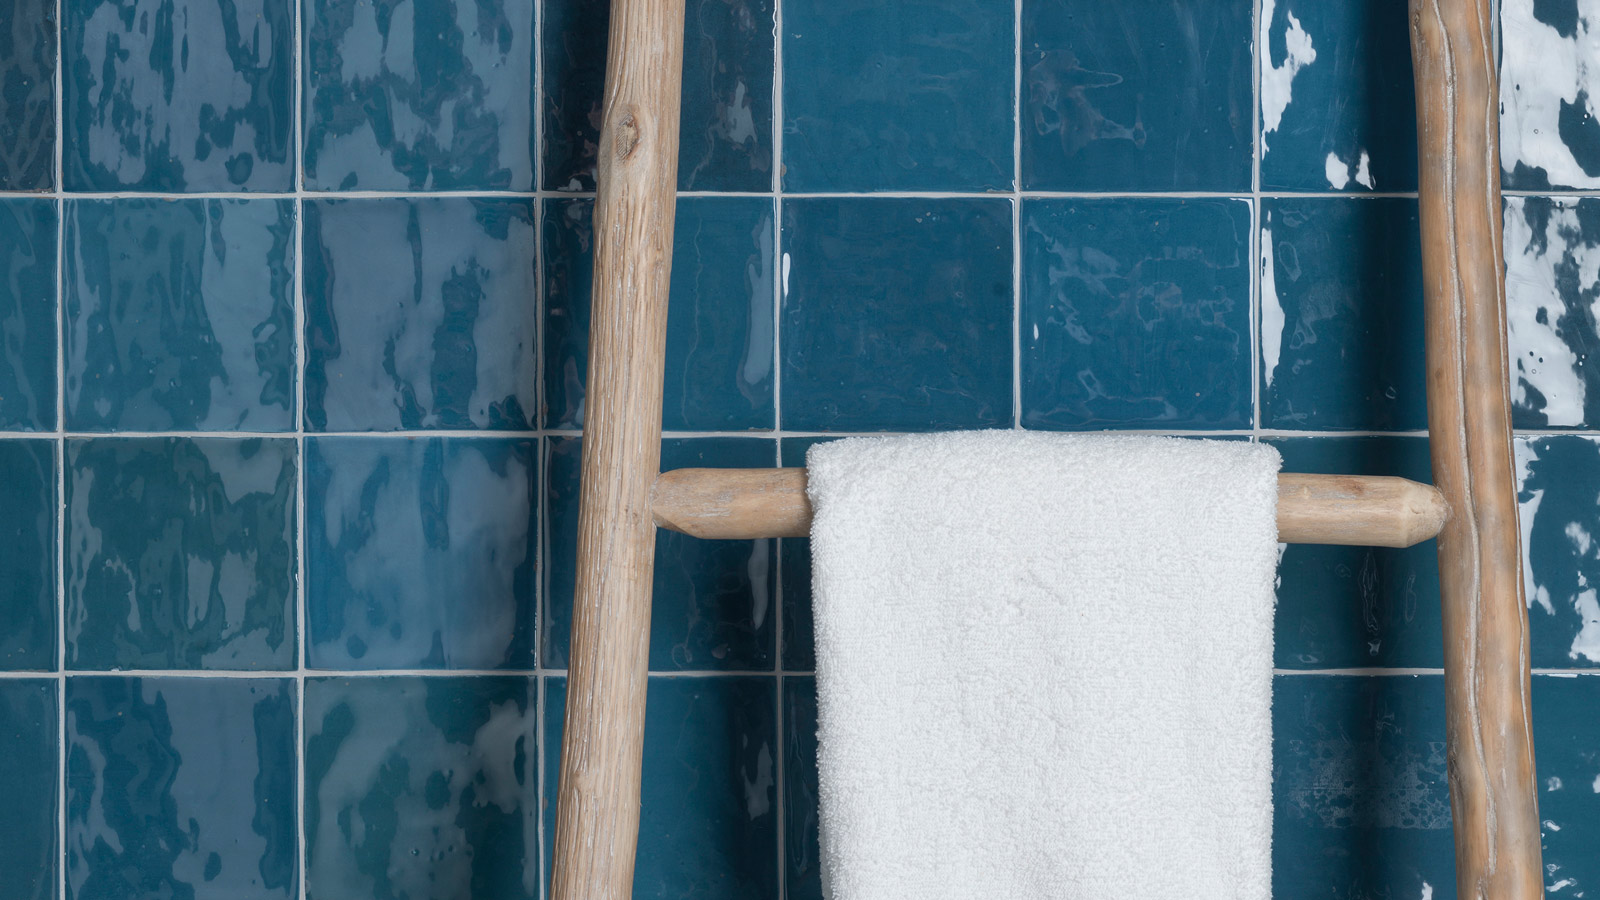 Different Ways to Add a Touch of Blue in Your Bathroom